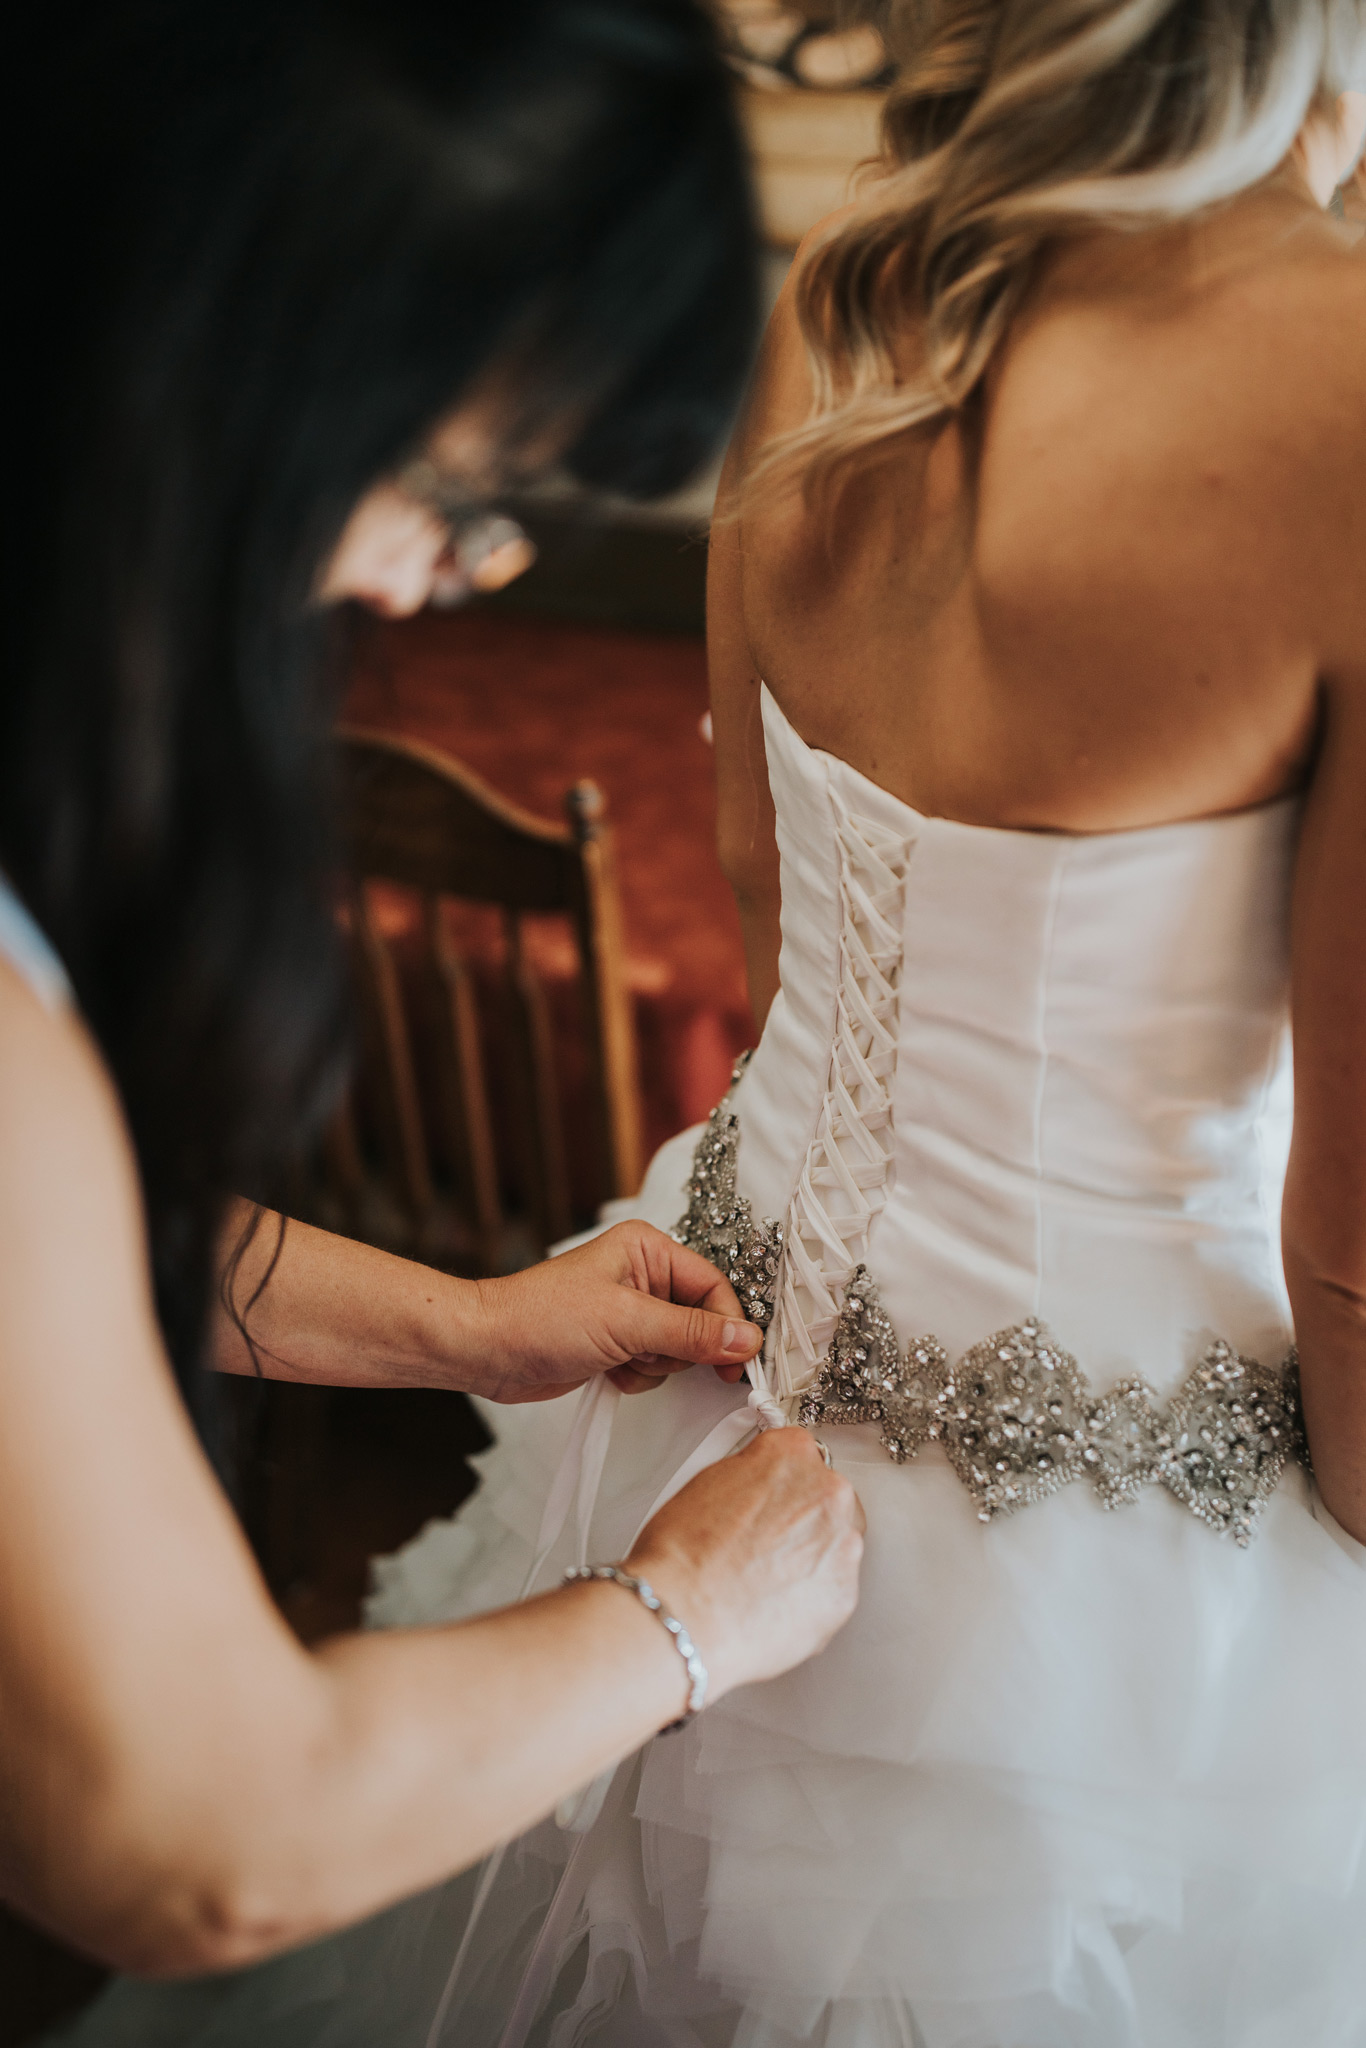 brides mother ties up her wedding dress